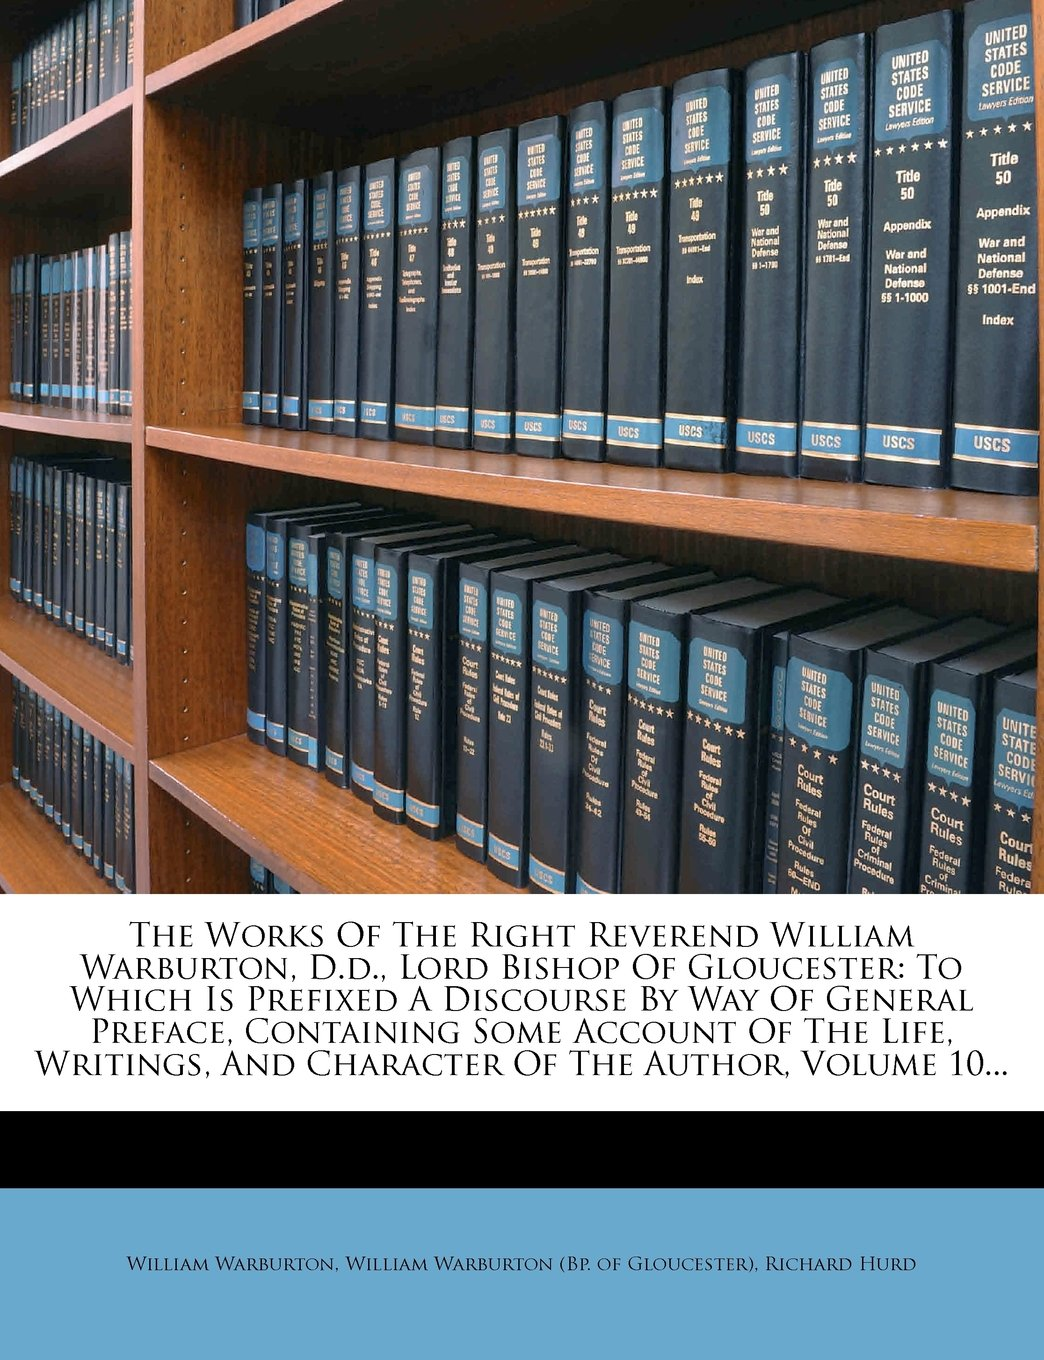 The Works Of The Right Reverend William Warburton, D.d., Lord Bishop Of Gloucester: To Which Is Prefixed A Discourse By Way Of General Preface, ... And Character Of The Author, Volume 10... pdf epub